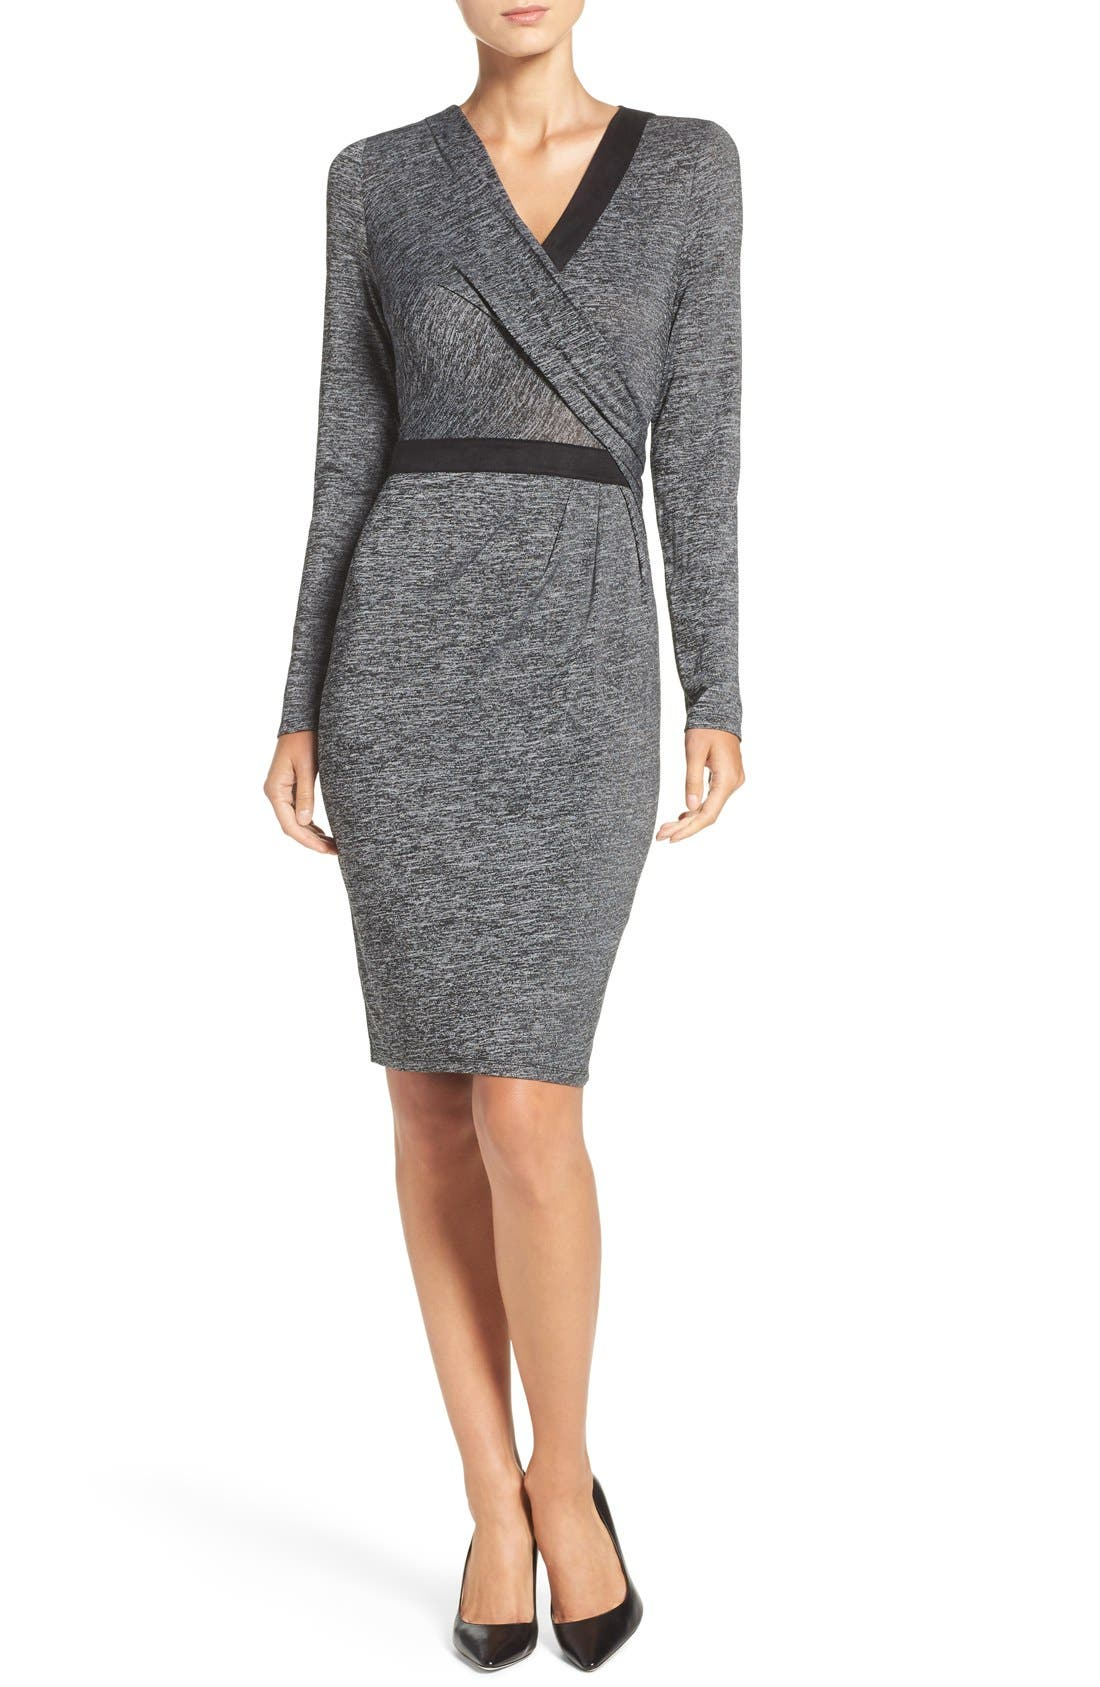 ADRIANNA PAPELL Knit Faux Wrap Dress